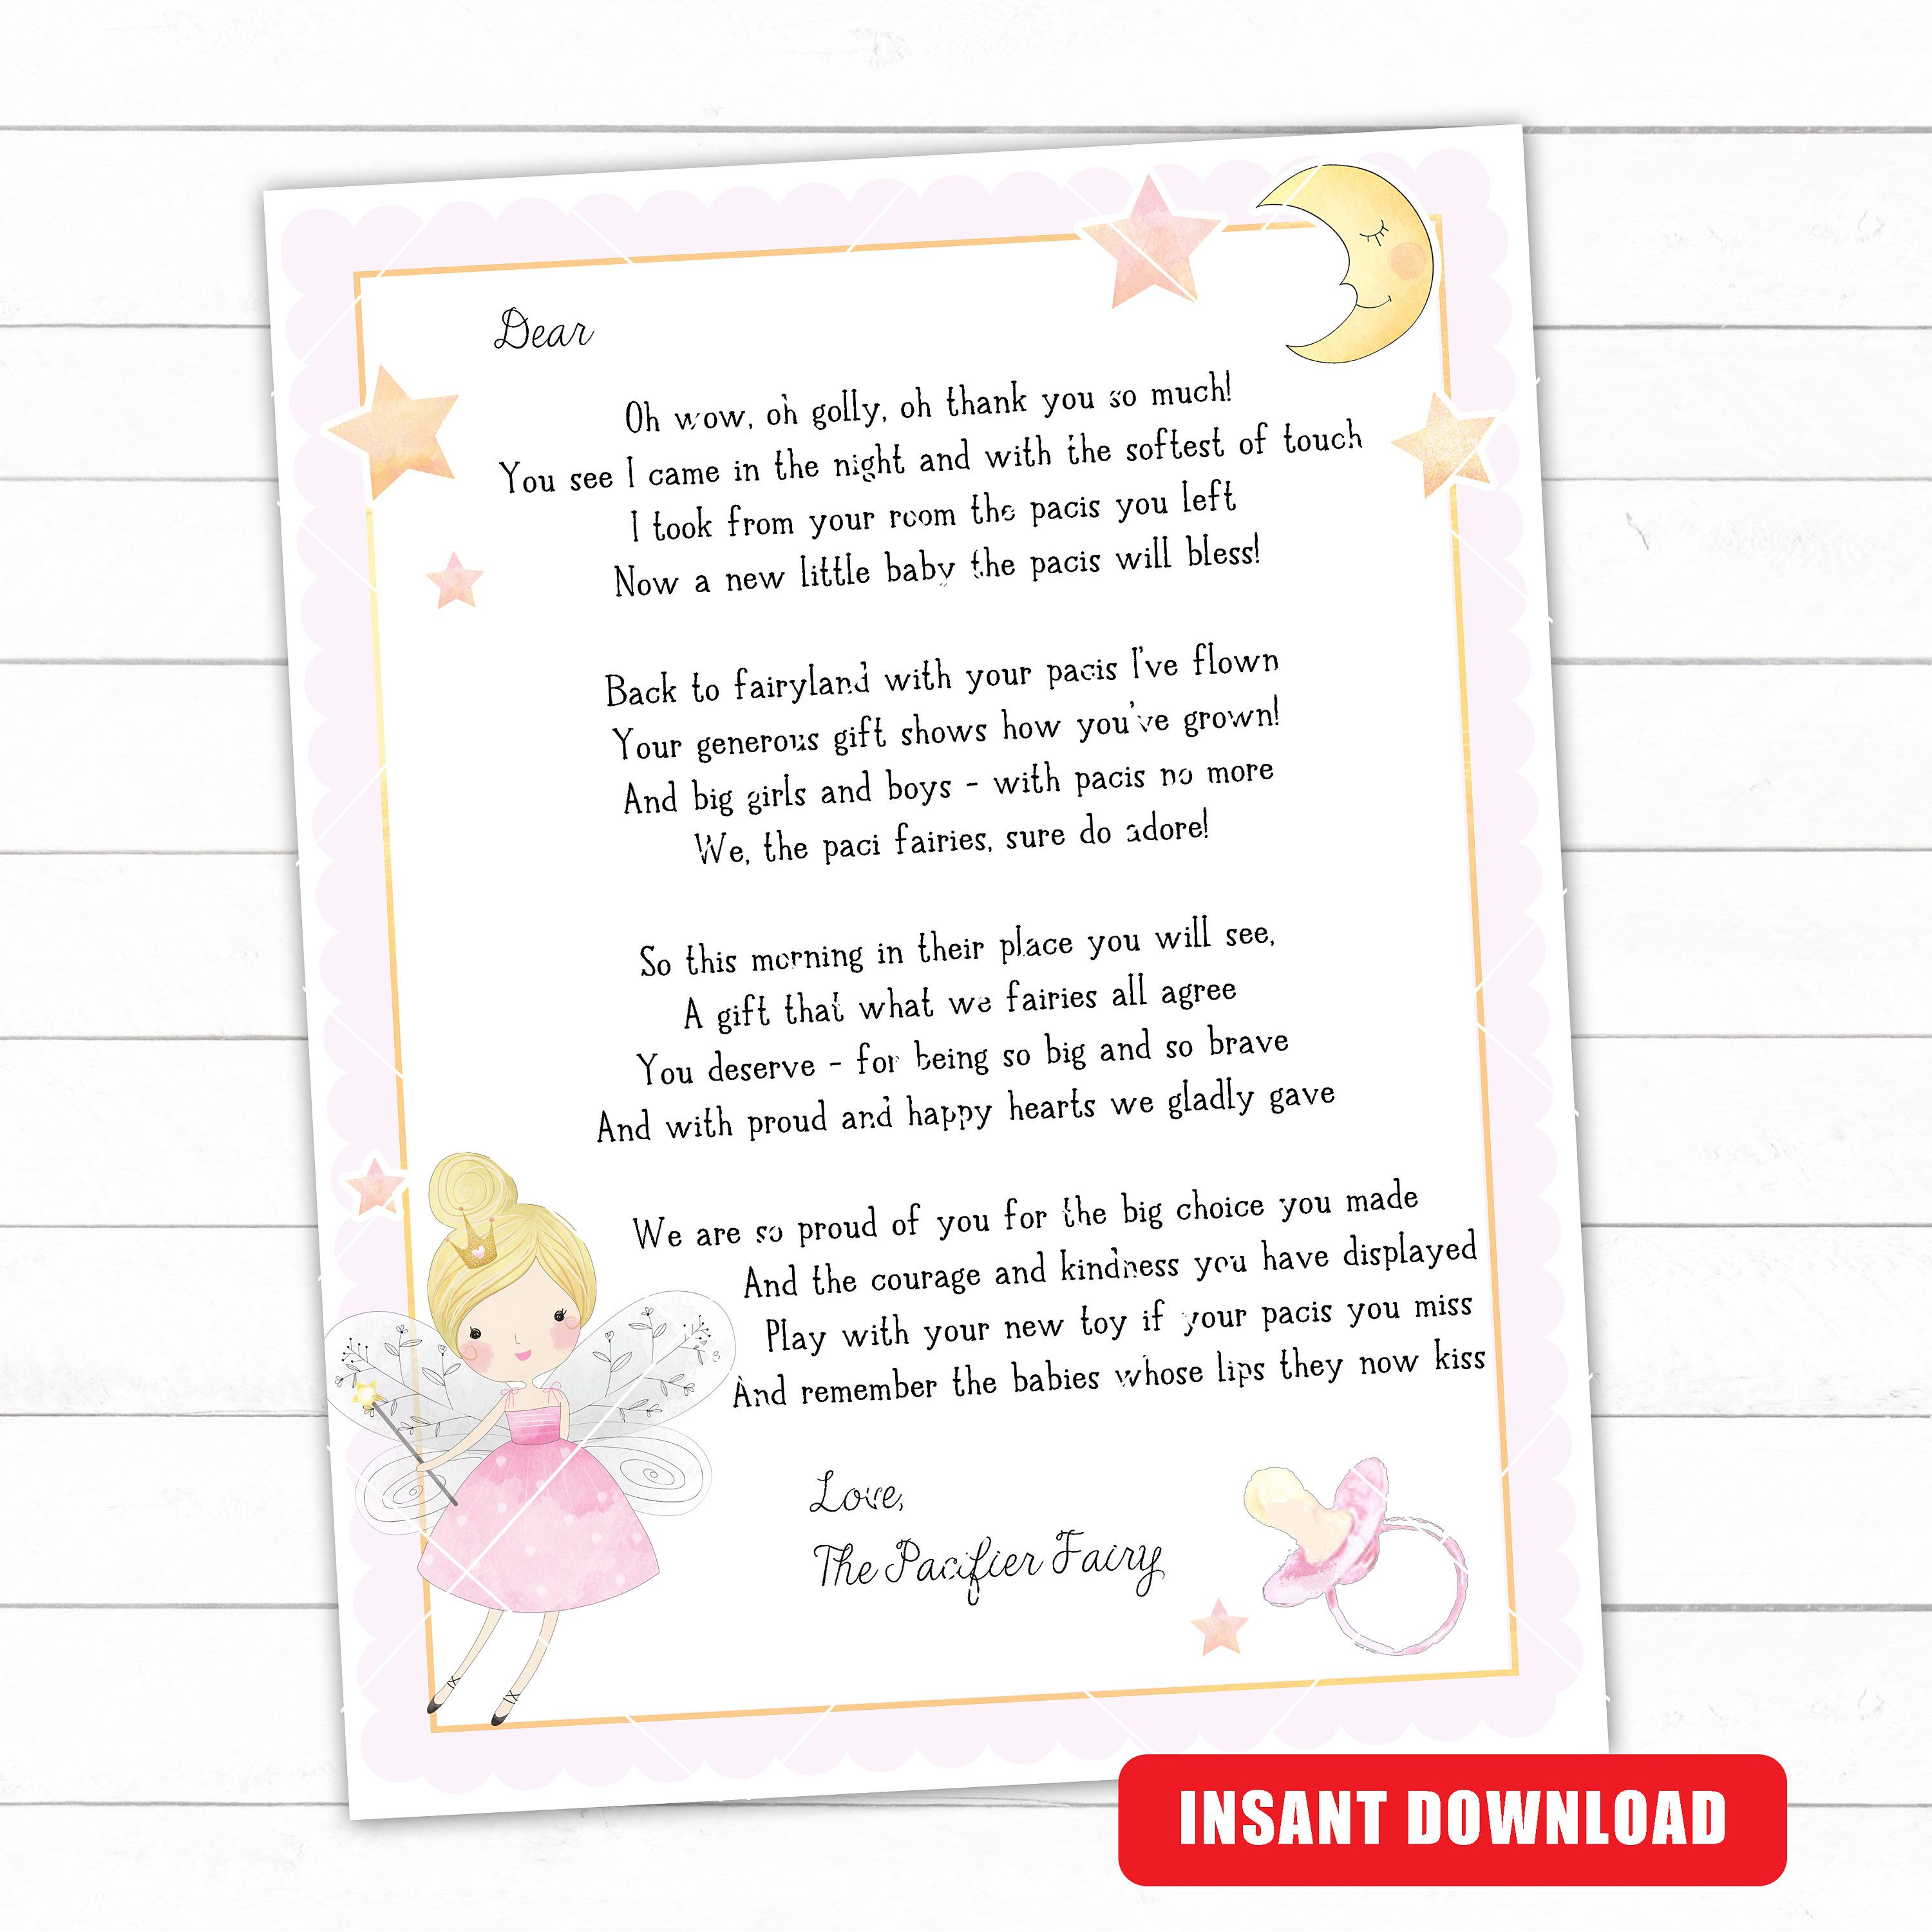 Paci Fairy Letter Binky Fairy Letter Dummy Fairy Letter Etsy Lettering Printable Designs Tooth Fairy